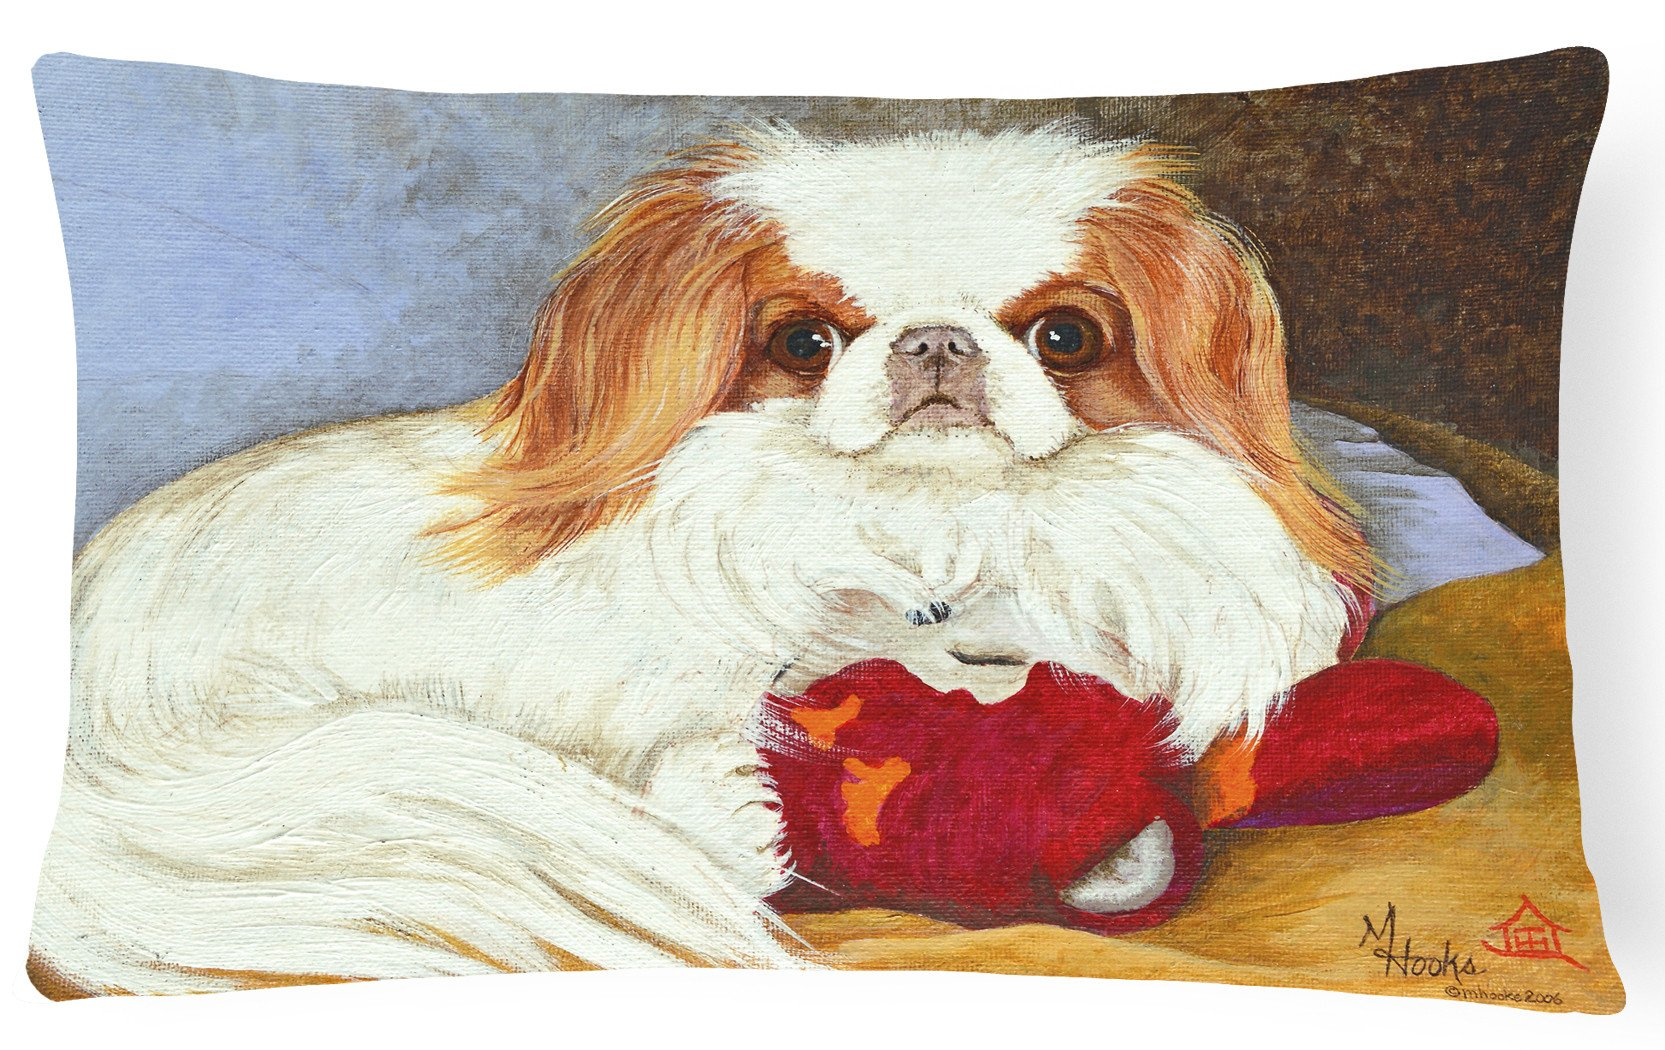 Japanese Chin Pink Gorilla Fabric Decorative Pillow MH1049PW1216 by Caroline's Treasures